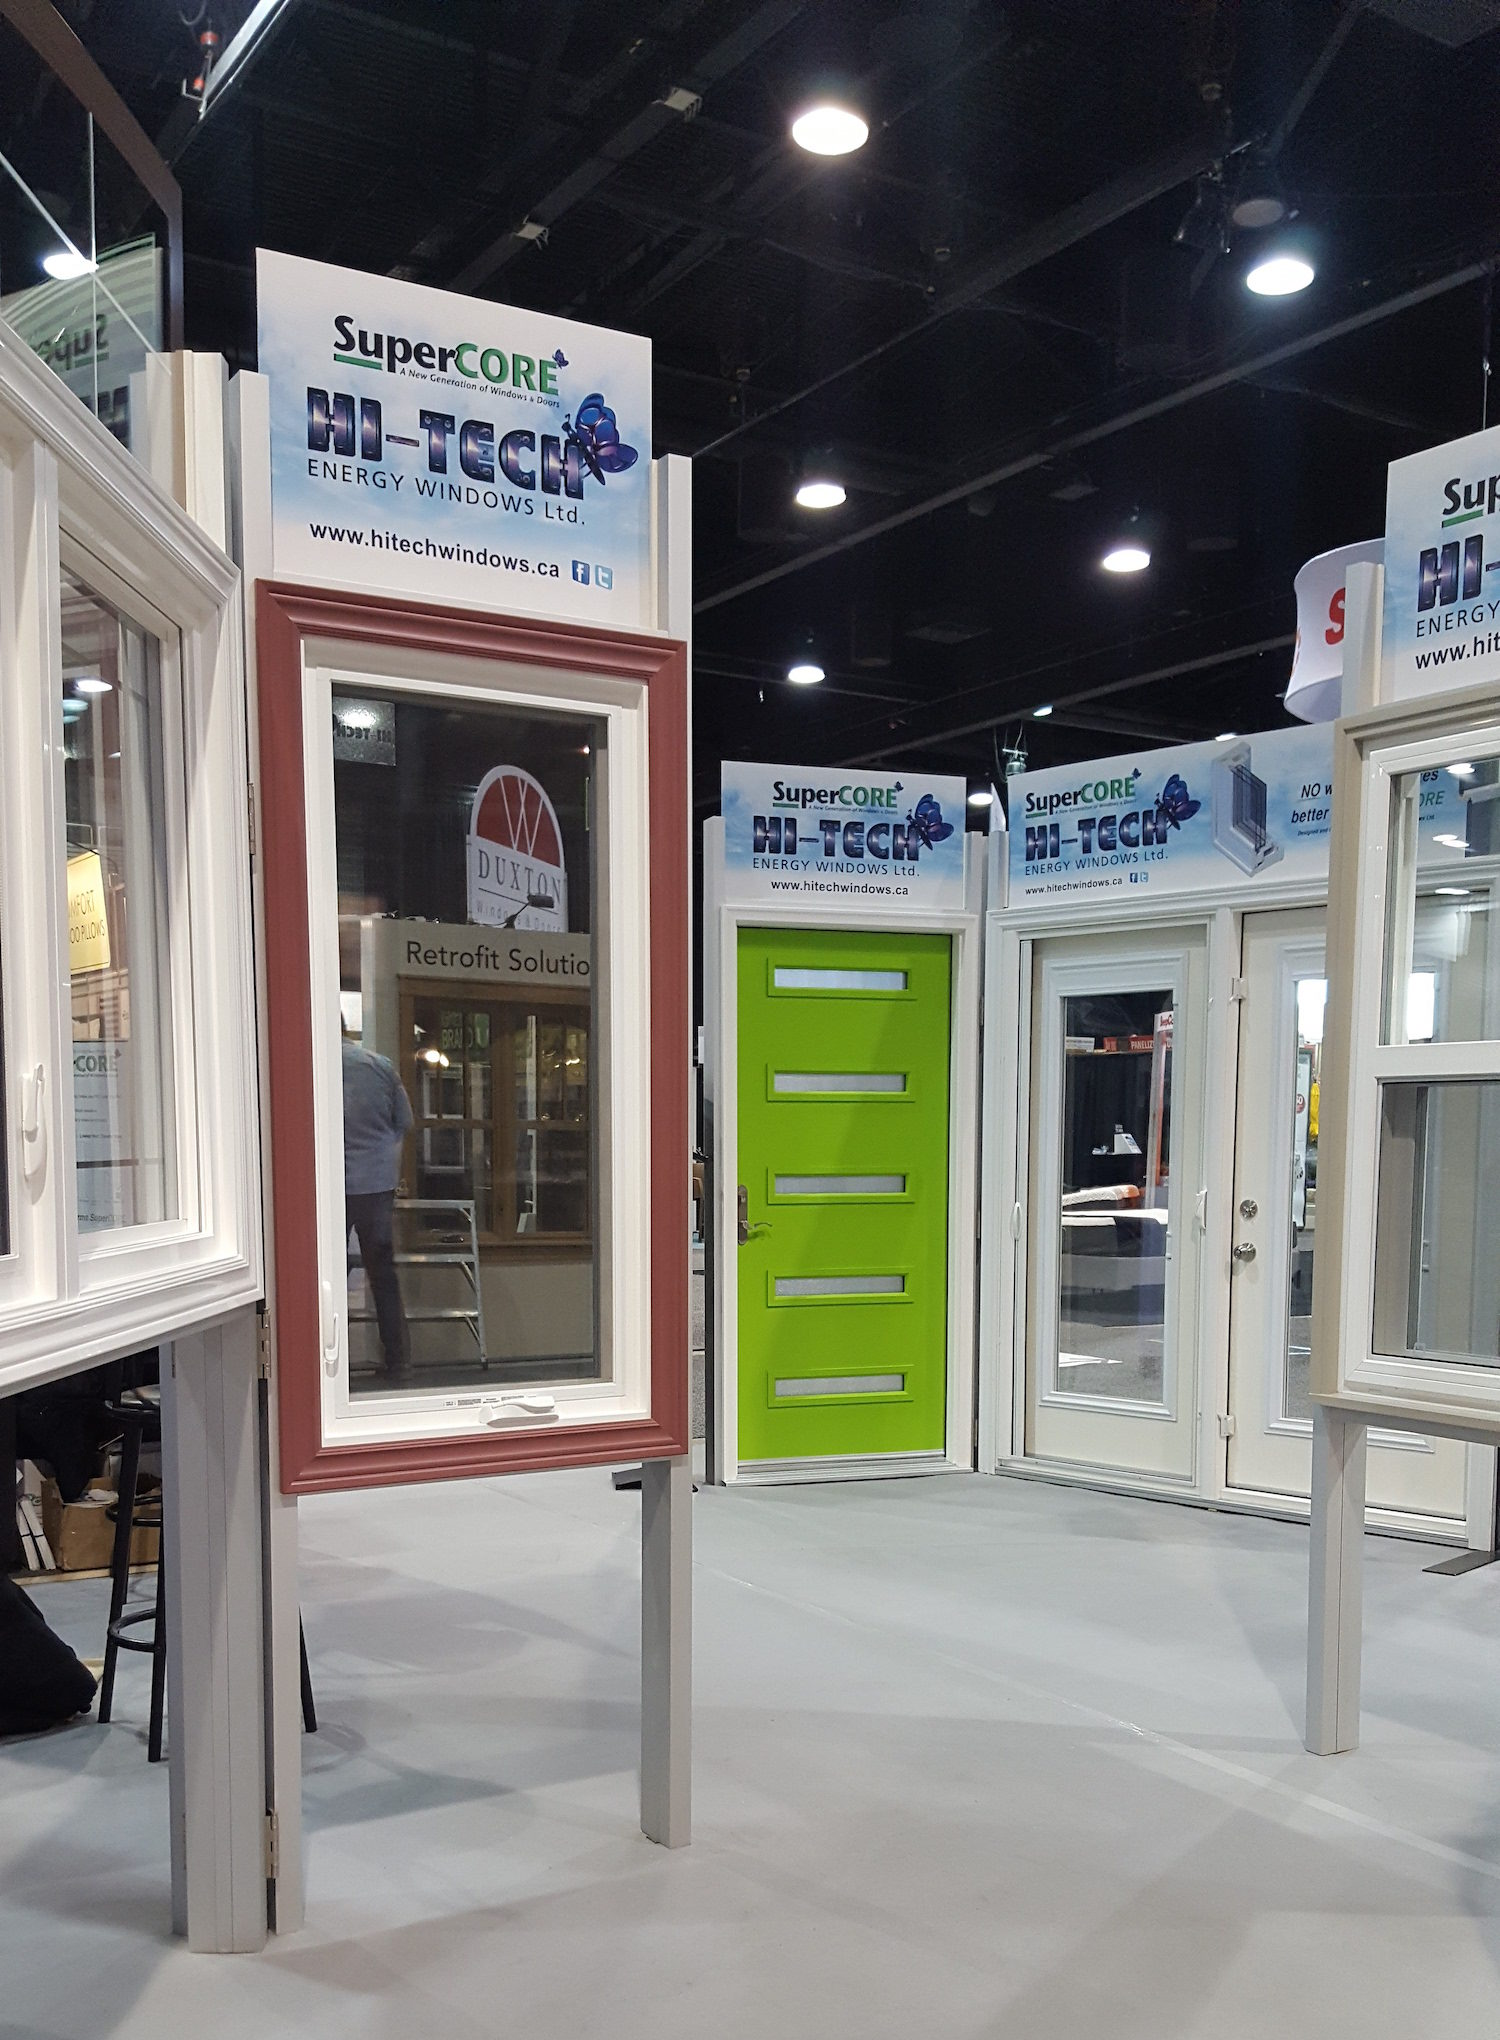 Windows and Doors at The Home and Garden Show Winnipeg & Windows and Doors at The Home and Garden Show Winnipeg - Hi-Tech ...